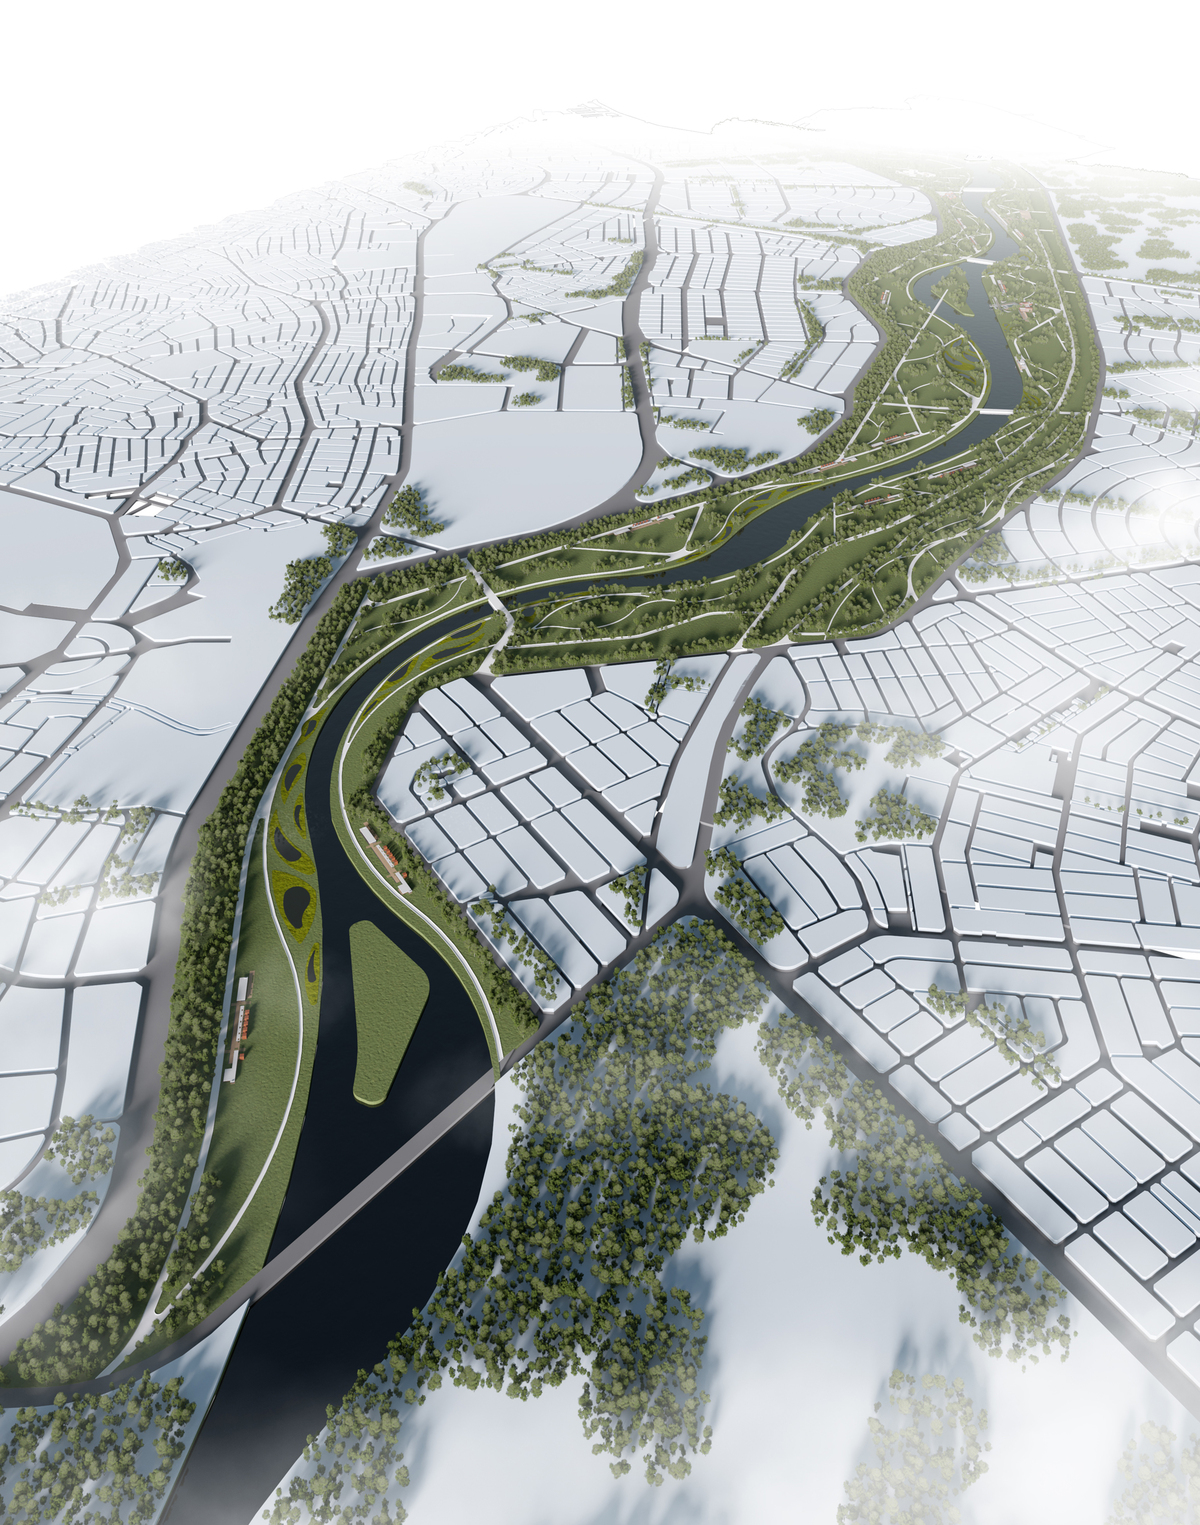 023 – AERIAL VIEW - Image Courtesy of ONZ Architects & MDesign